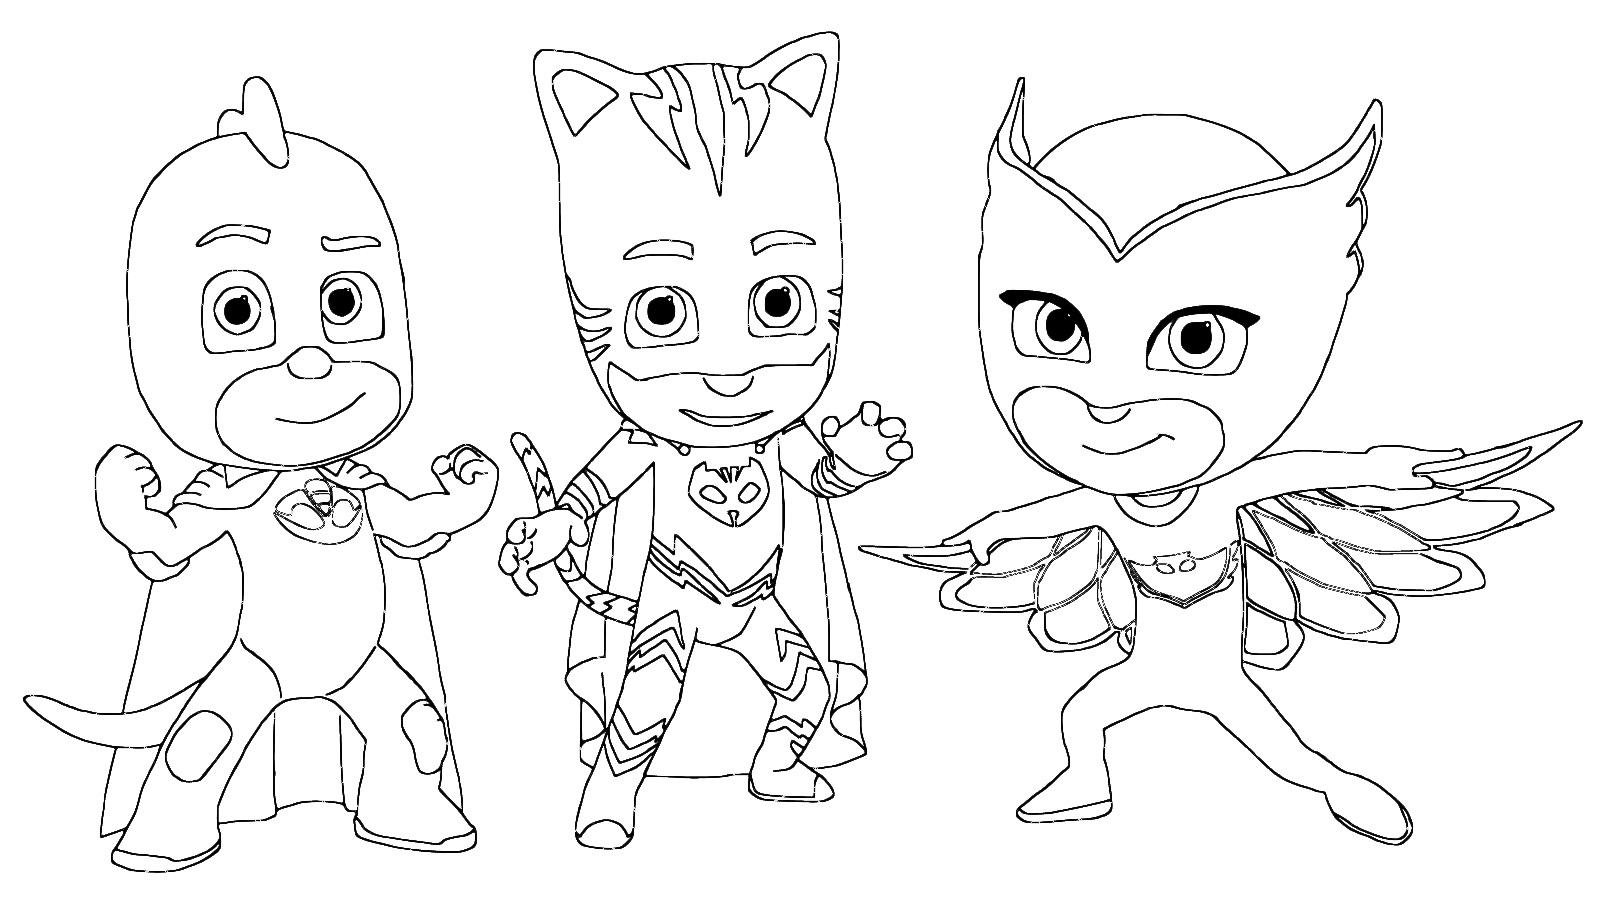 pj masks coloring page connor amaya and greg disguised as catboy owlette and gekko